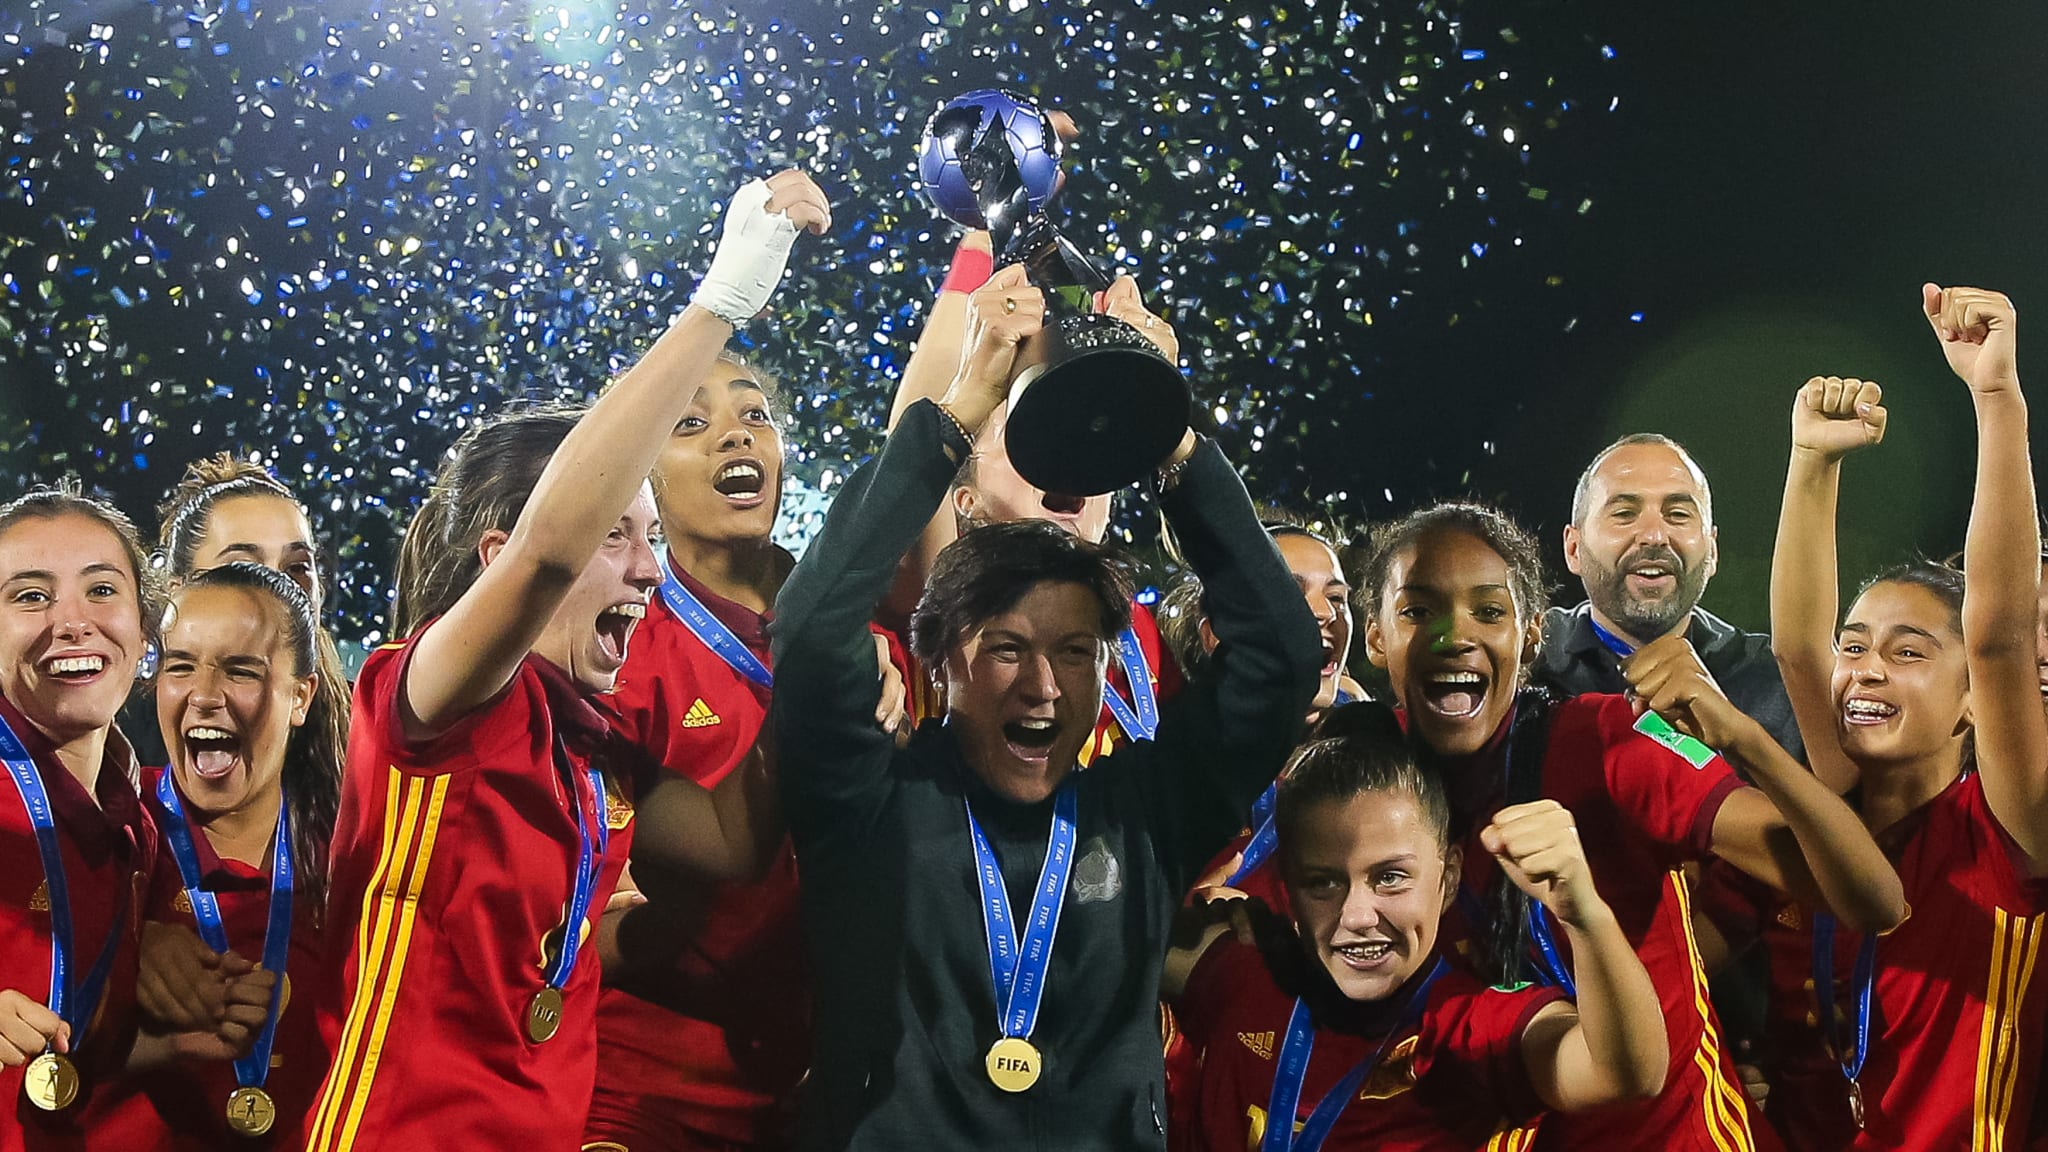 Head coach of Spain Toña Is and her players celebrate with the trophy